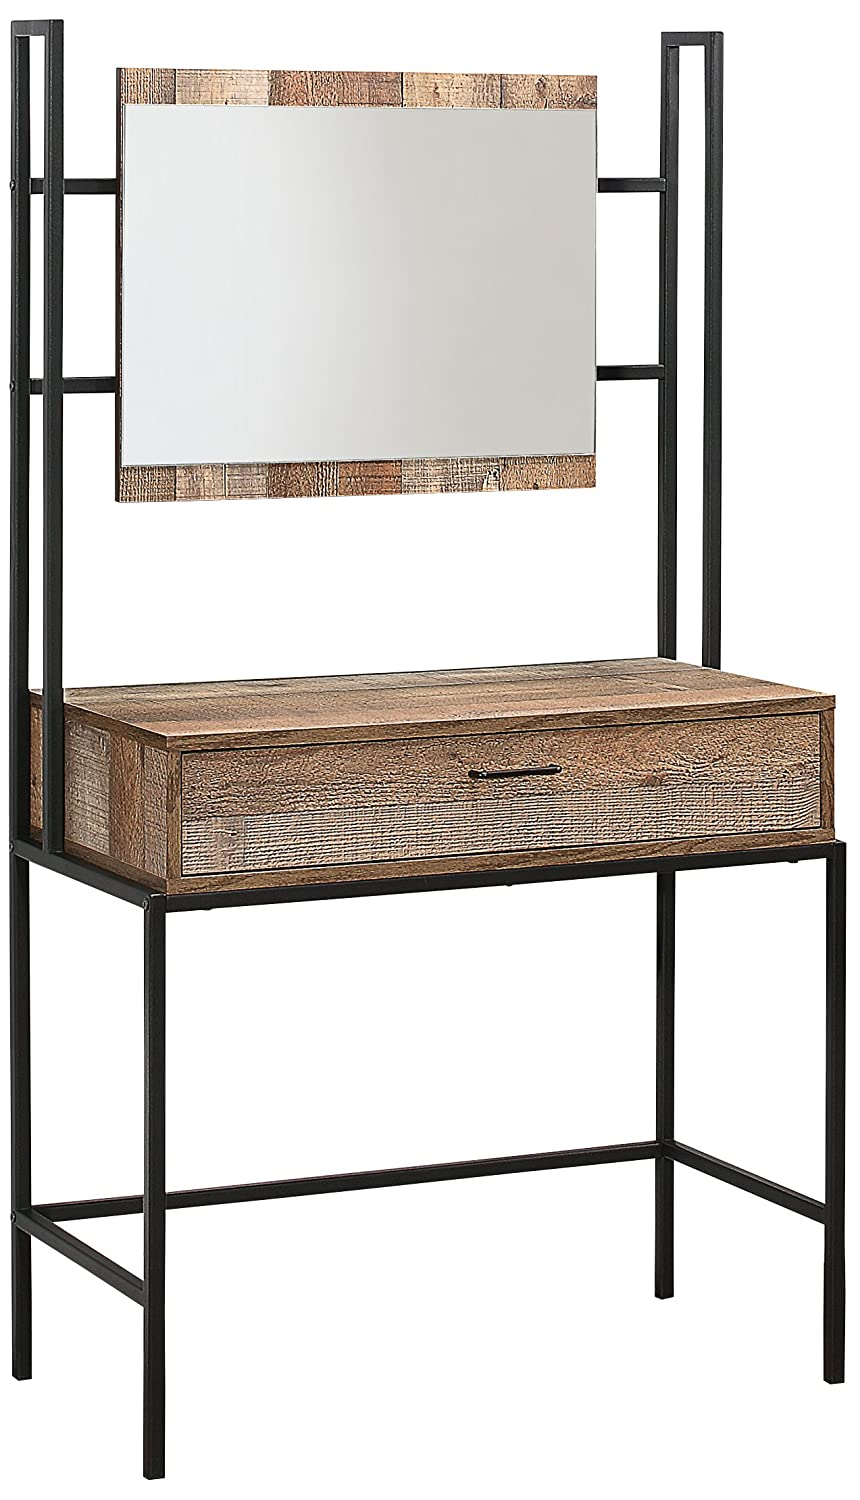 Birlea Urban Dressing Table and Mirror, Wood, Rustic Birlea Furniture URBDTMRUS